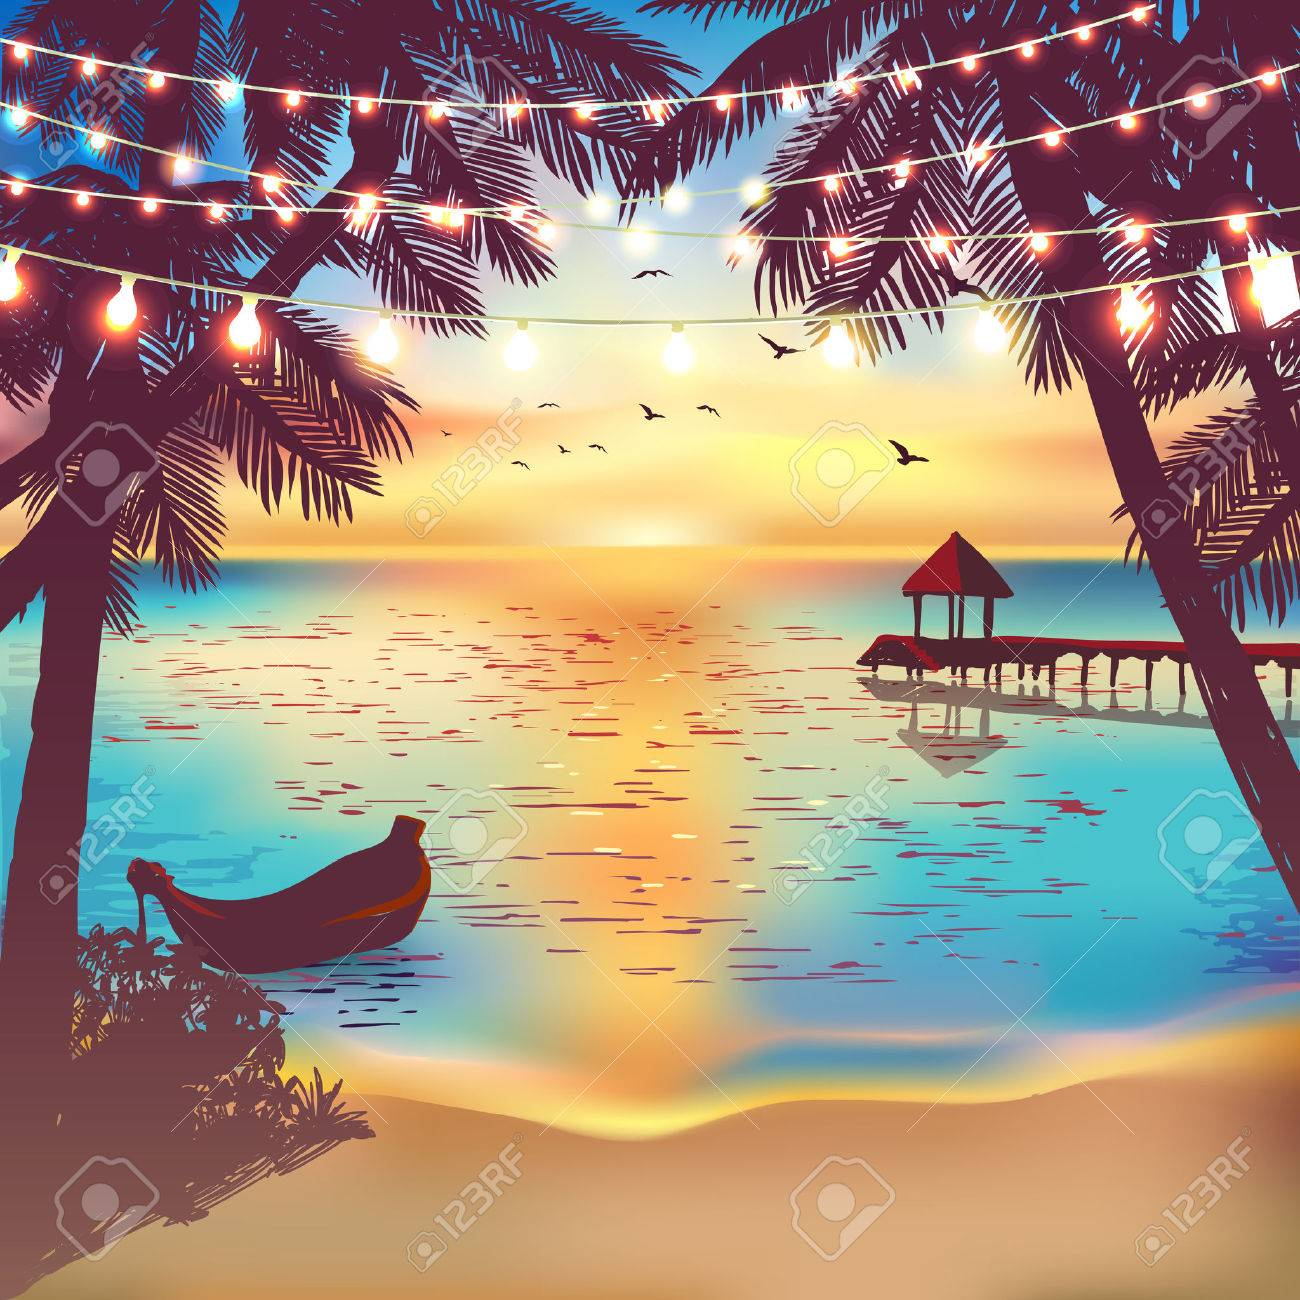 Hanging decorative holiday lights for a beach party. Inspiration card for wedding, date, birthday. Beach party invitation. Travel poster - 60981855